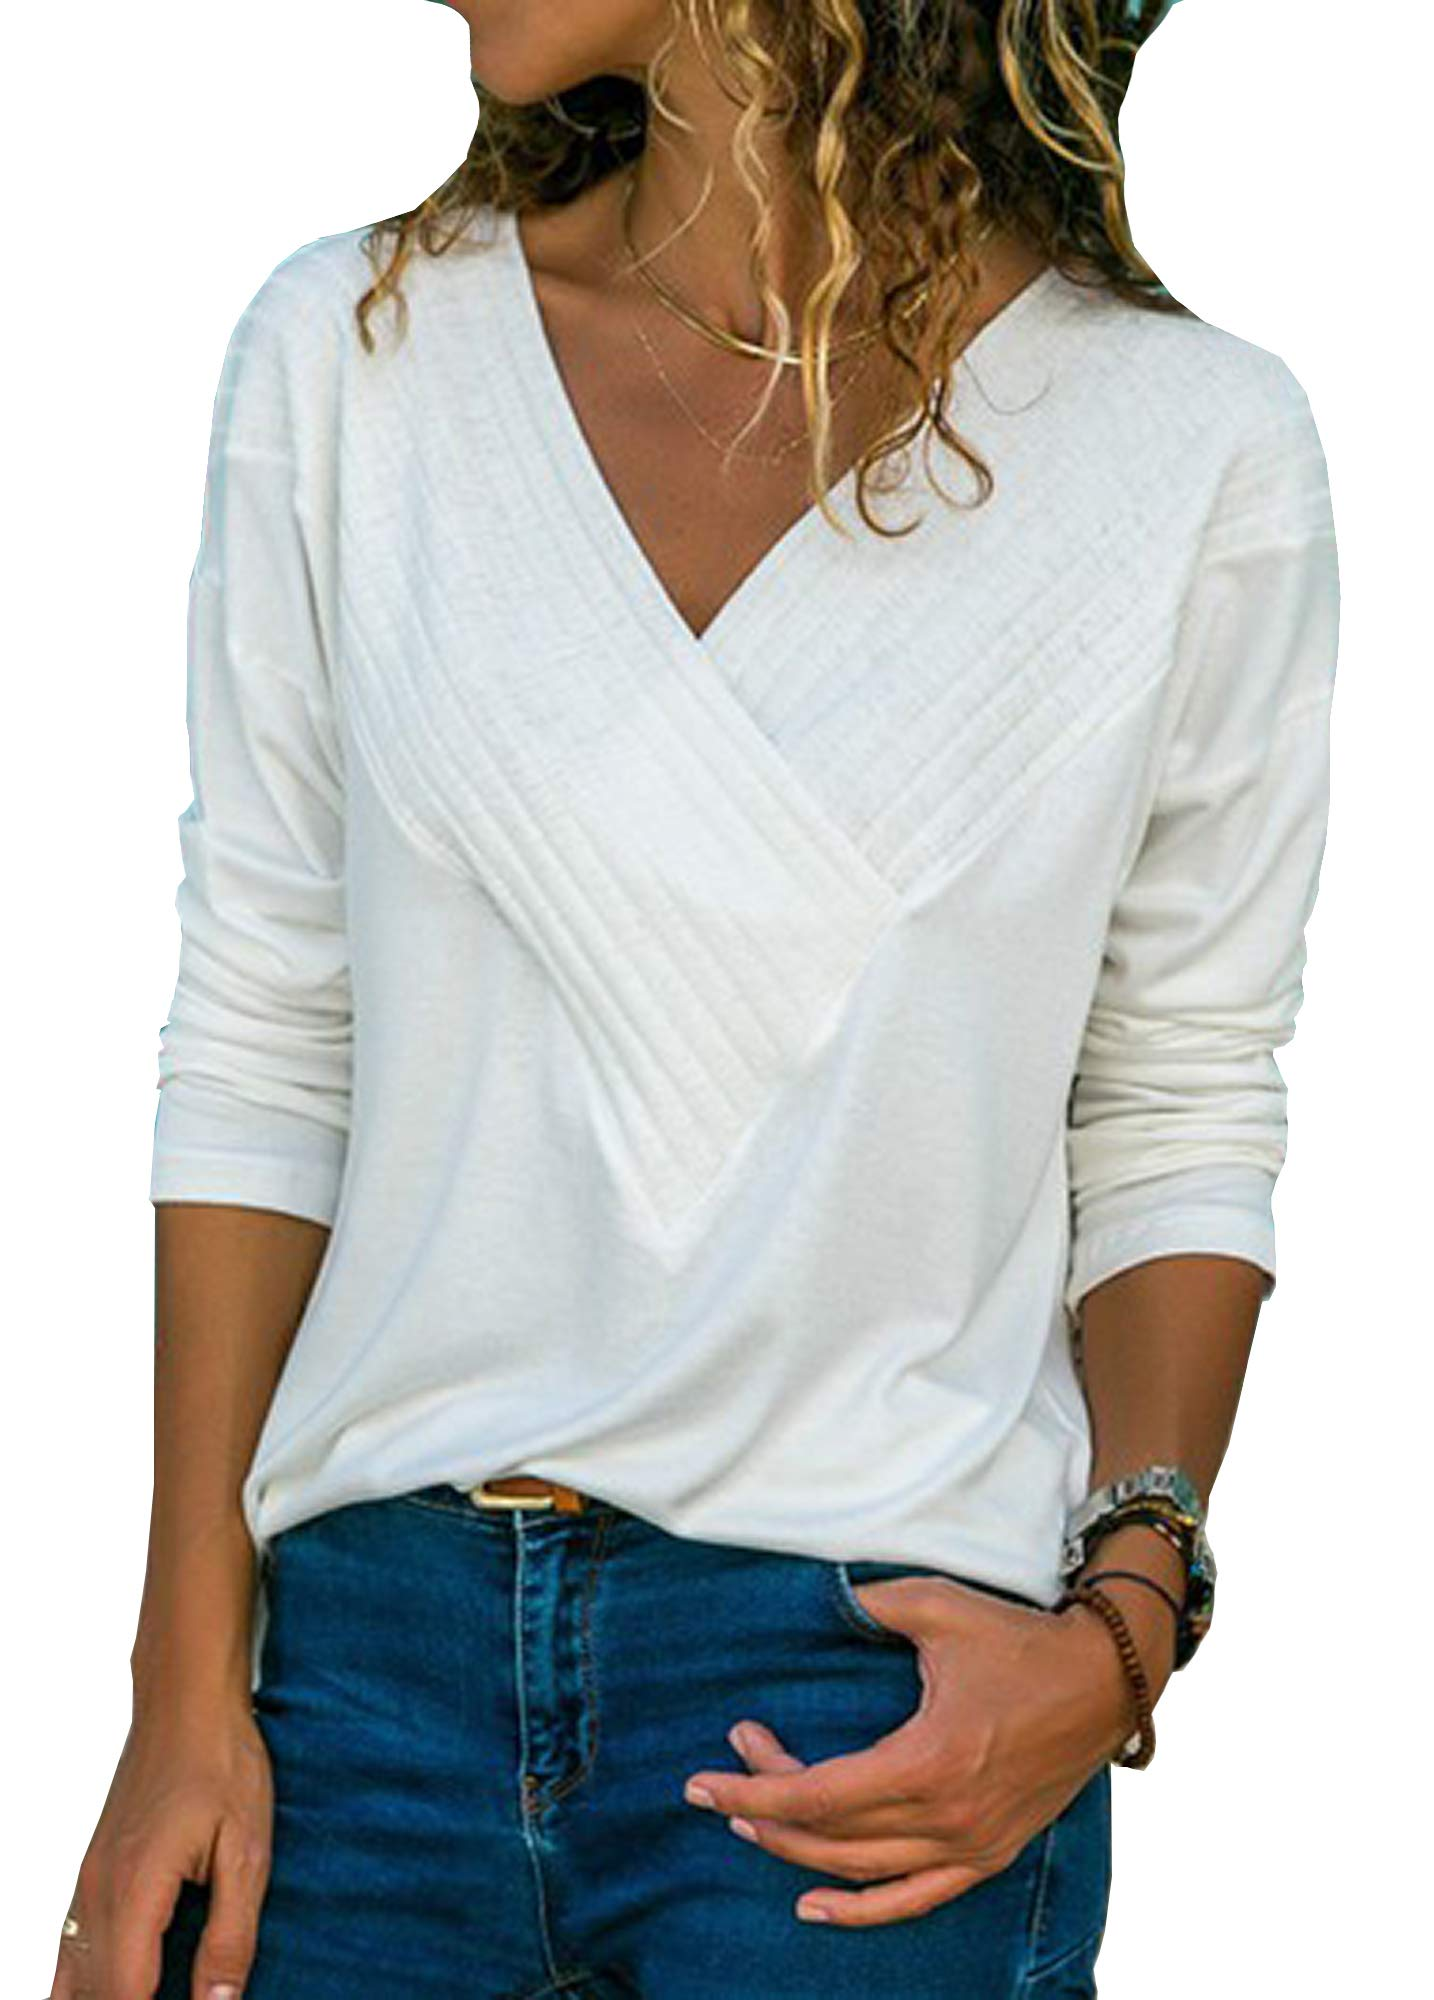 Women's Tops Casual Wrap Front V Neck Long Sleeve Fit Basic Tunic Blouse Shirts,White L